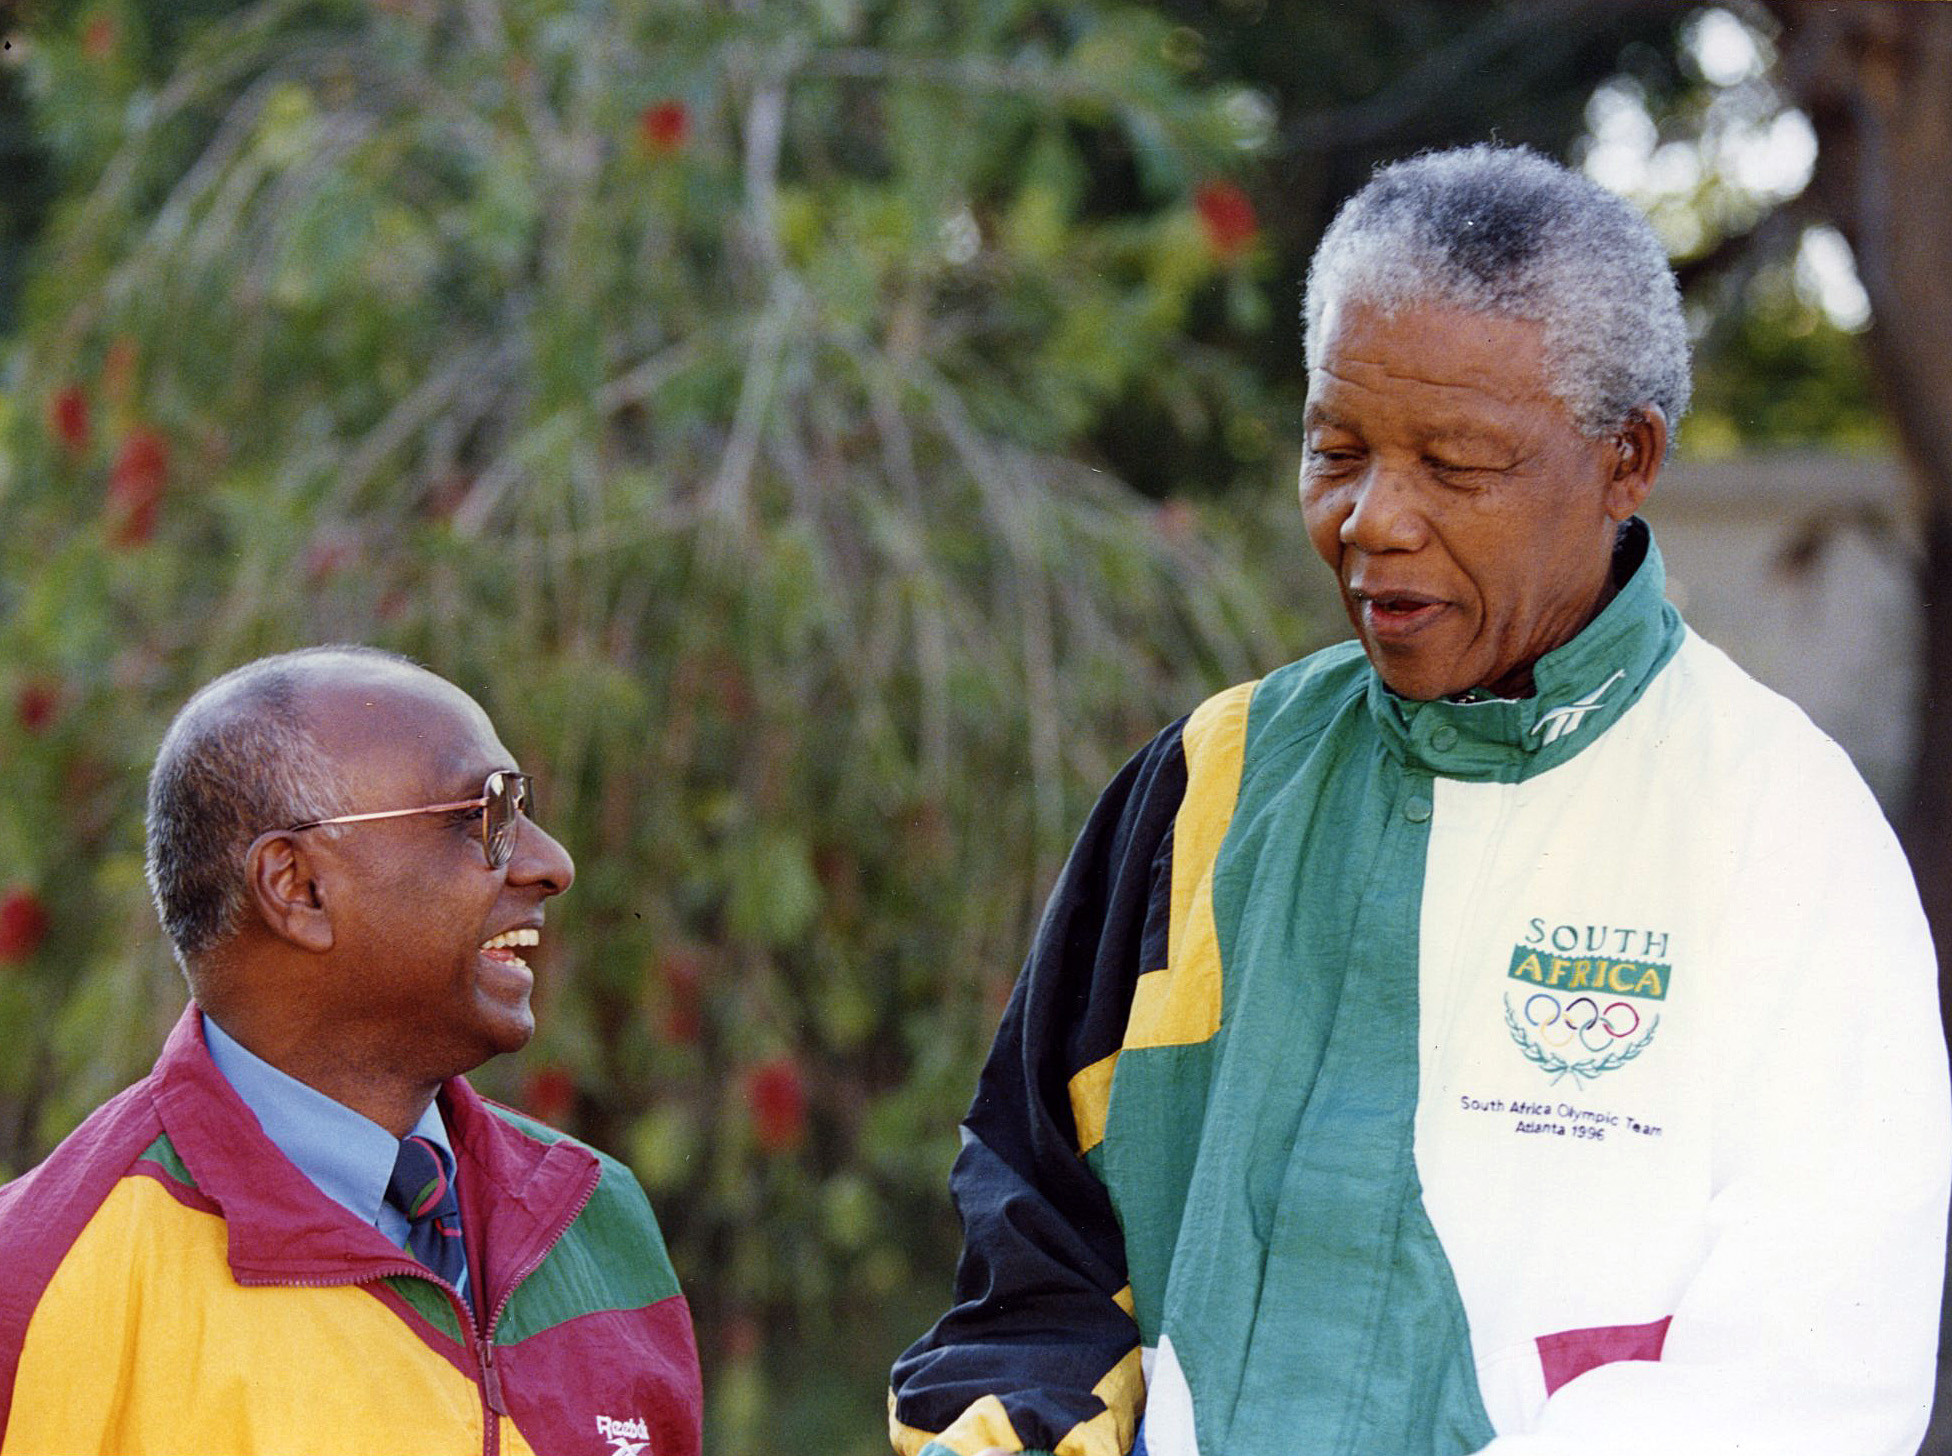 Sam Ramsamy pictured with South Africa's leader Nelson Mandela, who referred to Ramsamy as his